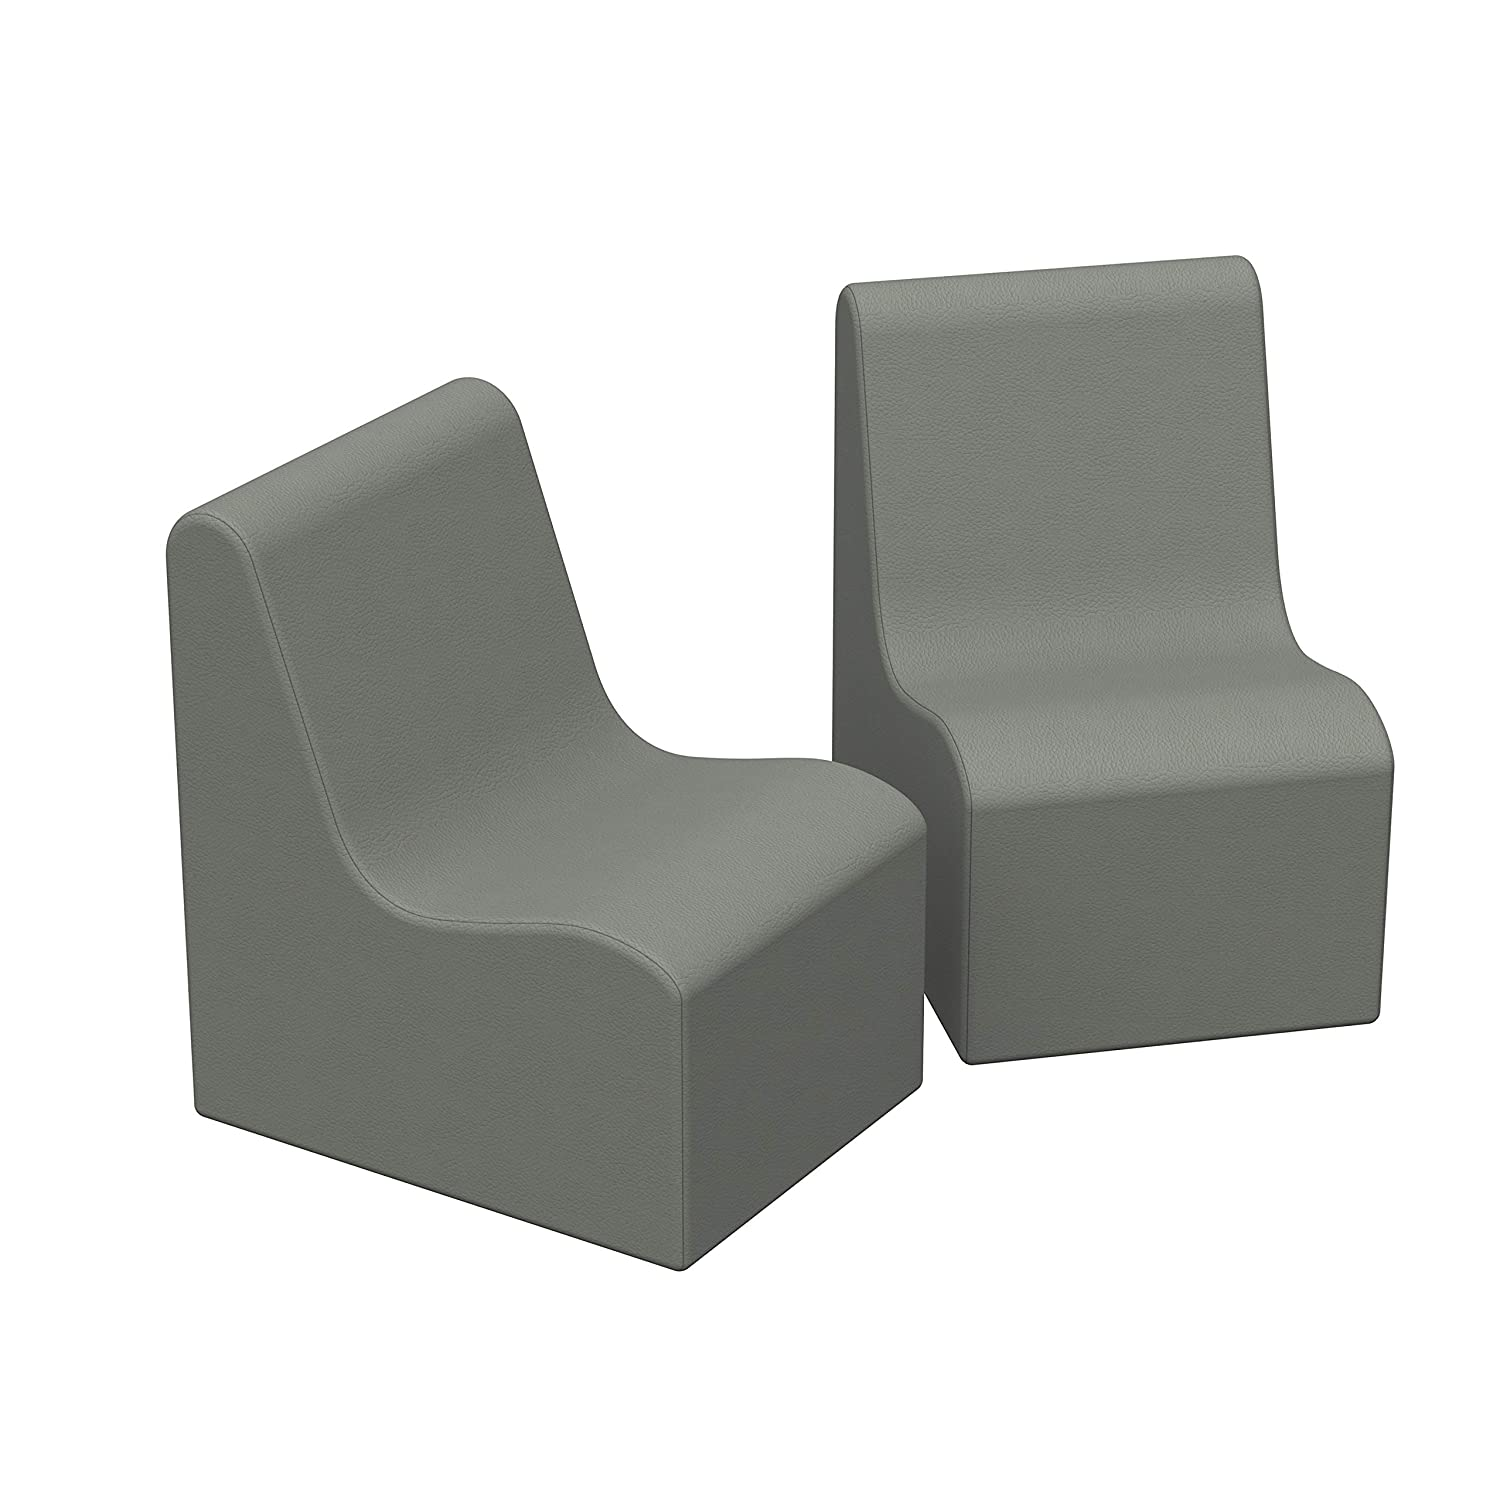 FDP SoftScape Wave Preschool Chair Seating Set, Children's Soft Supportive Foam Furniture for Home, Kid's Playroom, Bedroom, Classroom, Waiting Areas - Gray (2-Pack)